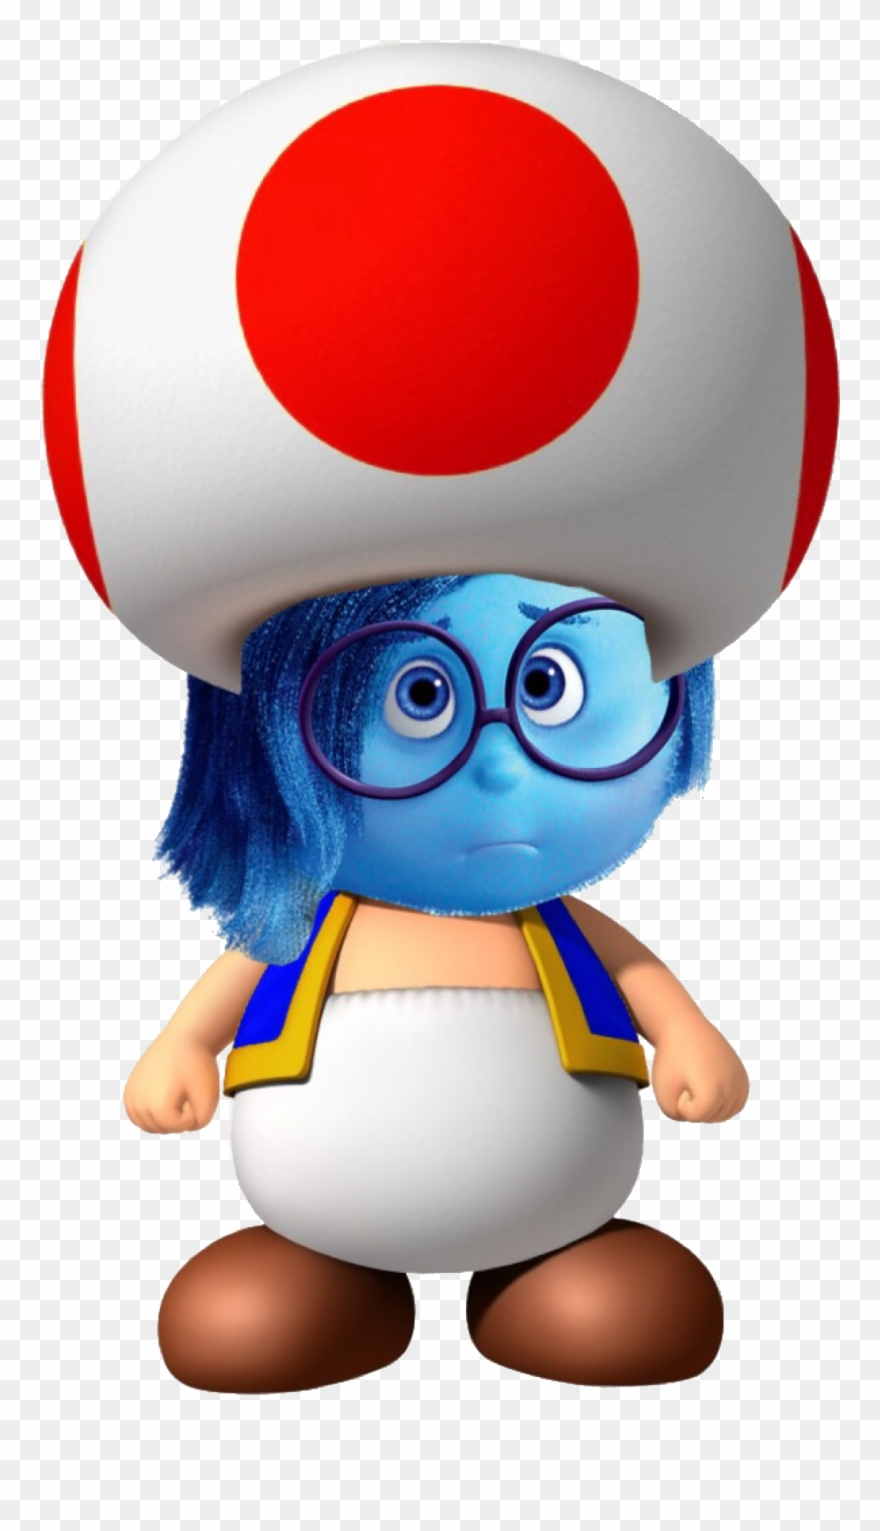 Toadstool S Sadness Mario Bros Wii Blue Toad Clipart 3247447 Pinclipart